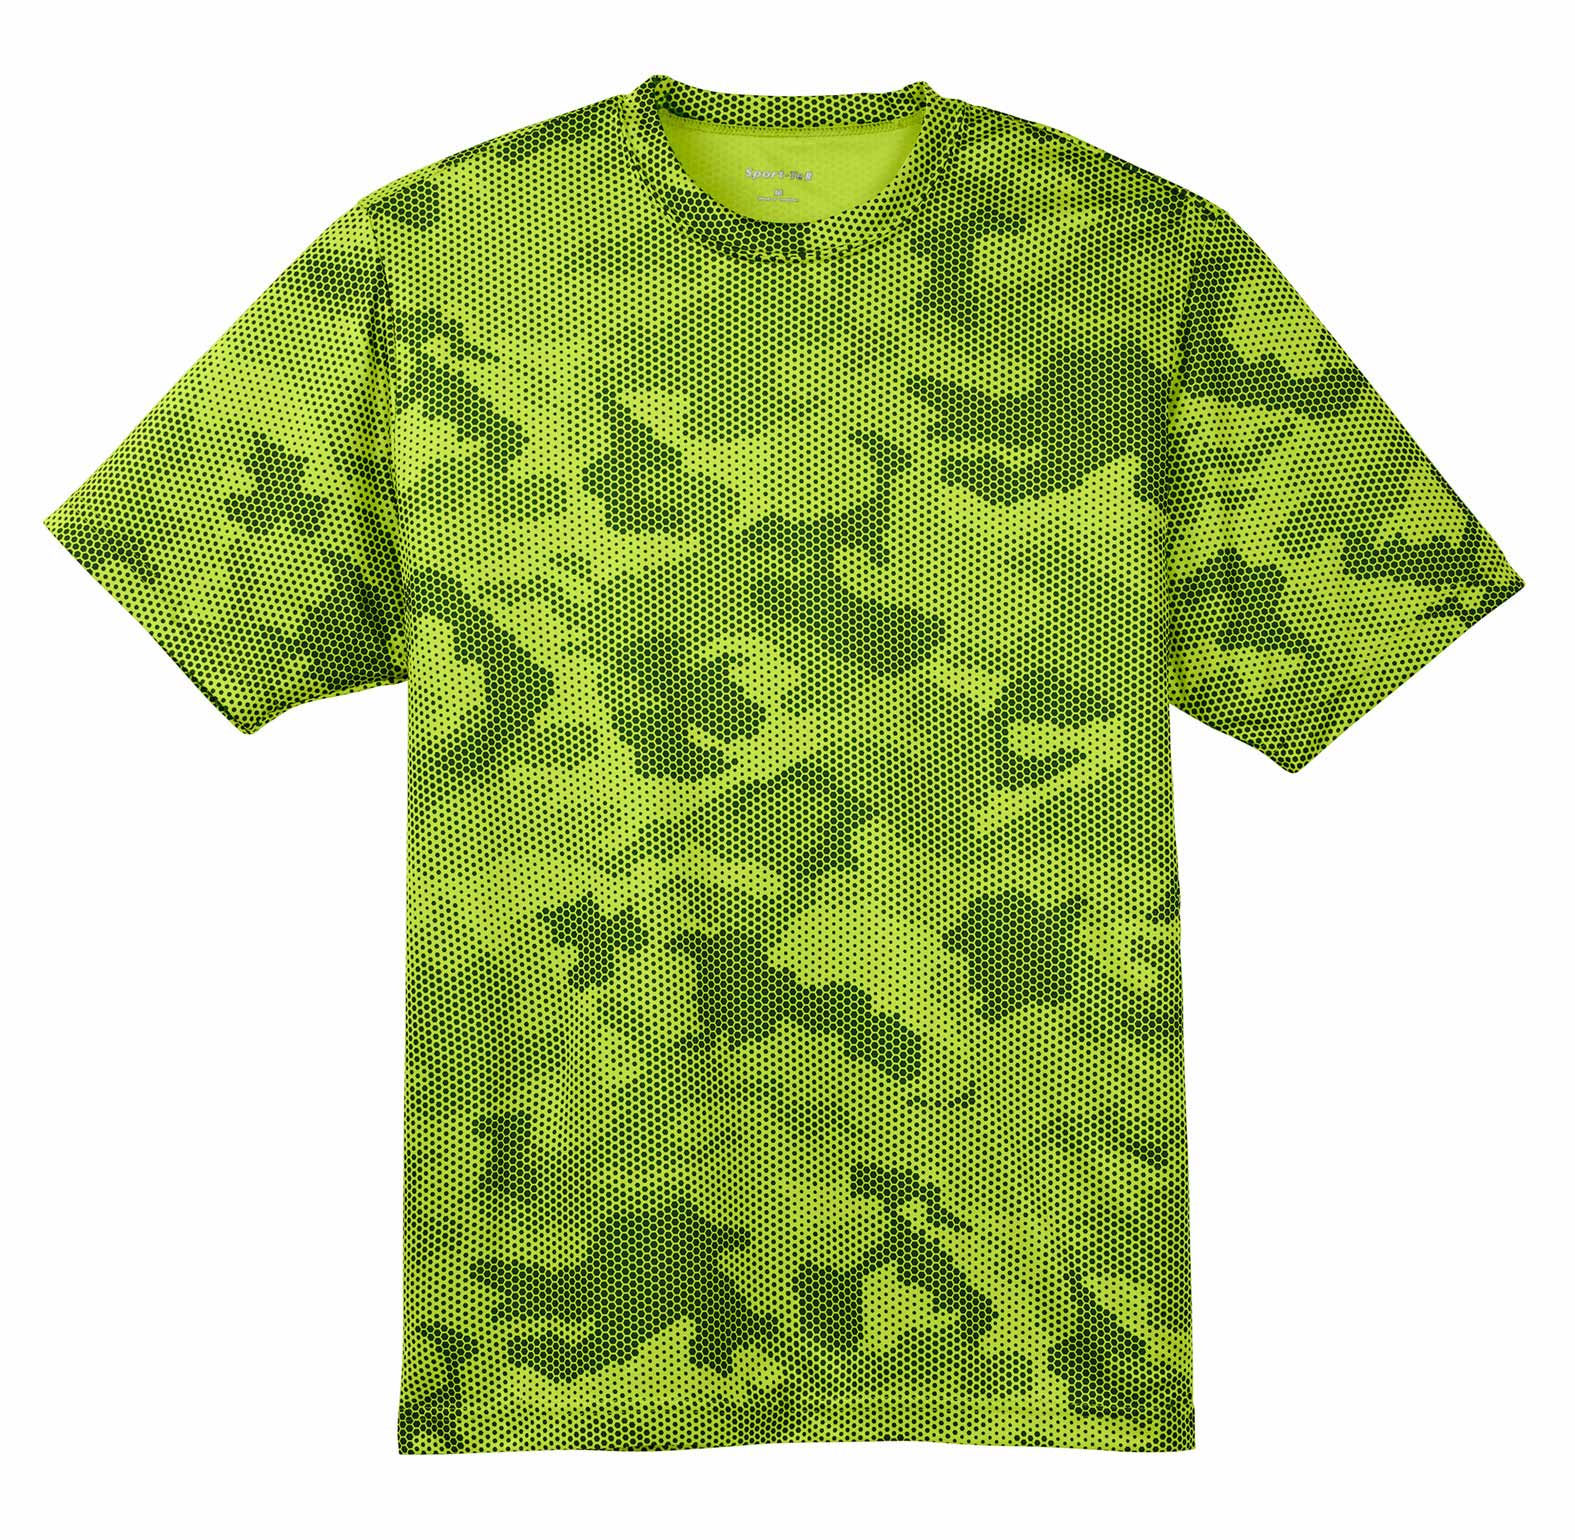 Adult CamoHex Tee